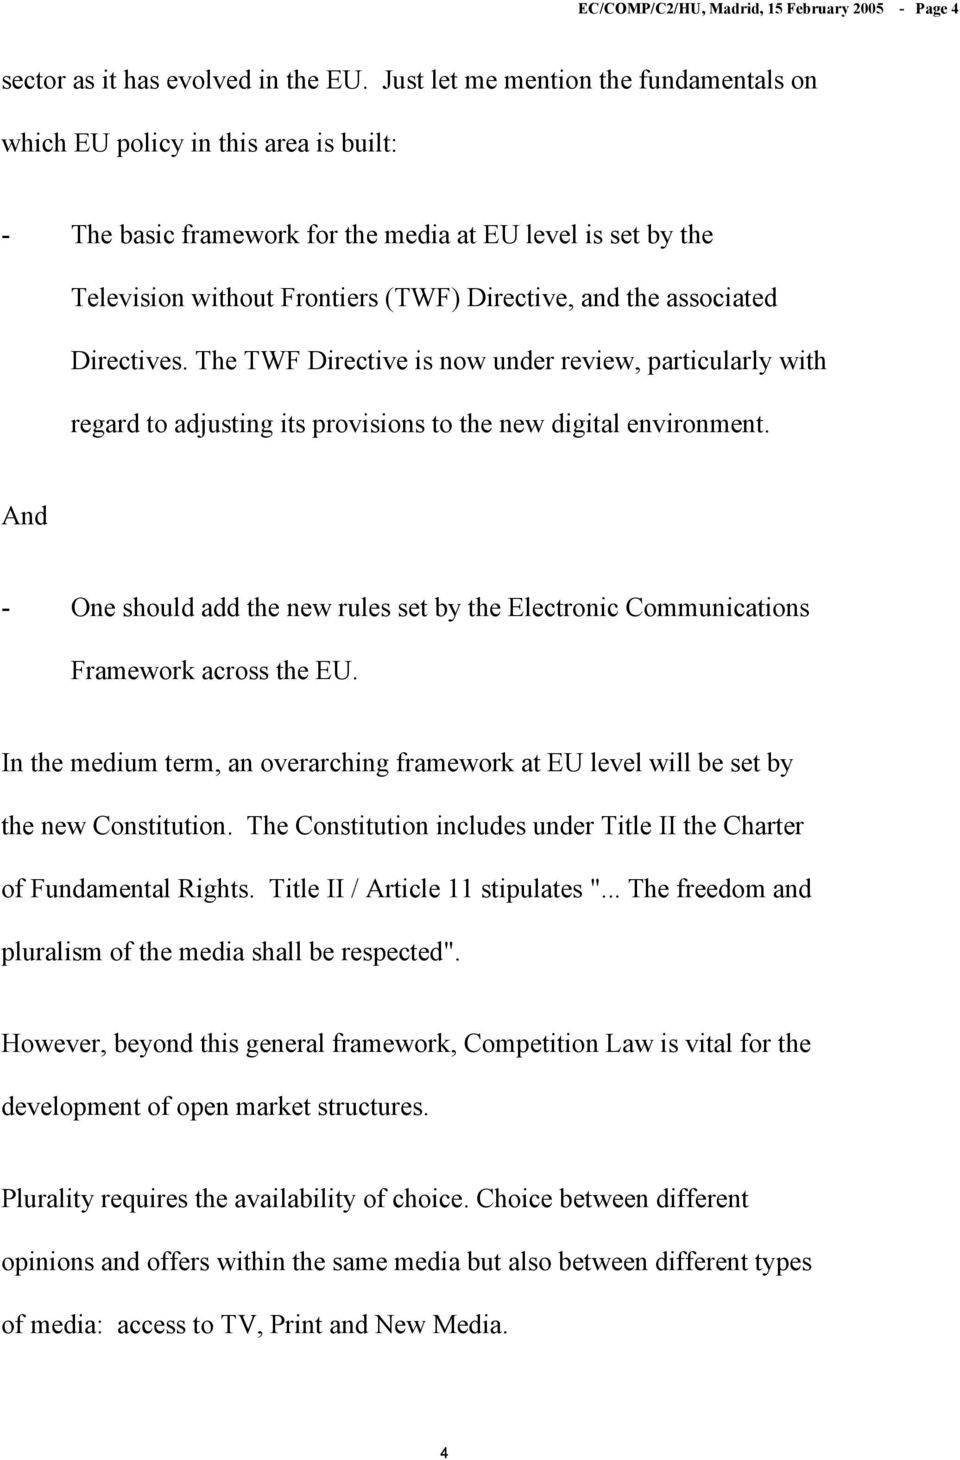 associated Directives. The TWF Directive is now under review, particularly with regard to adjusting its provisions to the new digital environment.